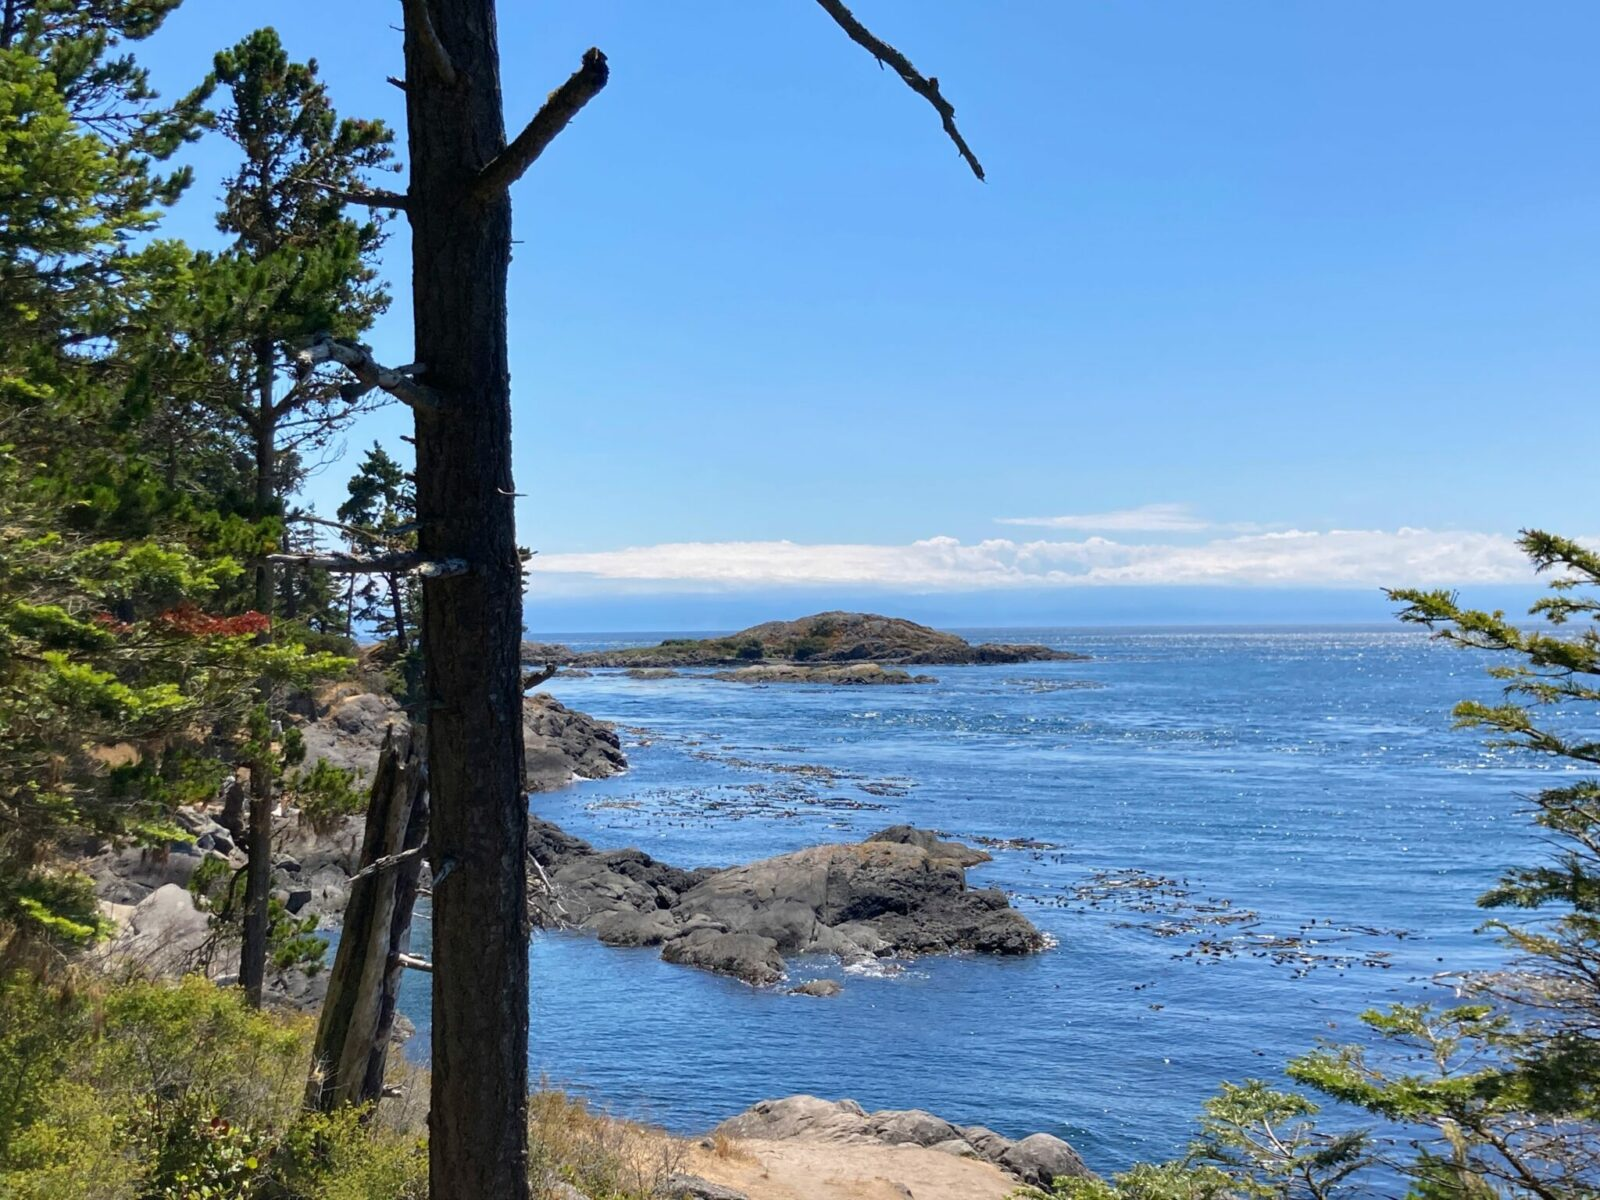 A favorite thing to do on Lopez Island is to hike to the edge of shark reef. There are trees in the foreground and brown and gray rocks in the water with lots of kelp. There are a few clouds in the distance